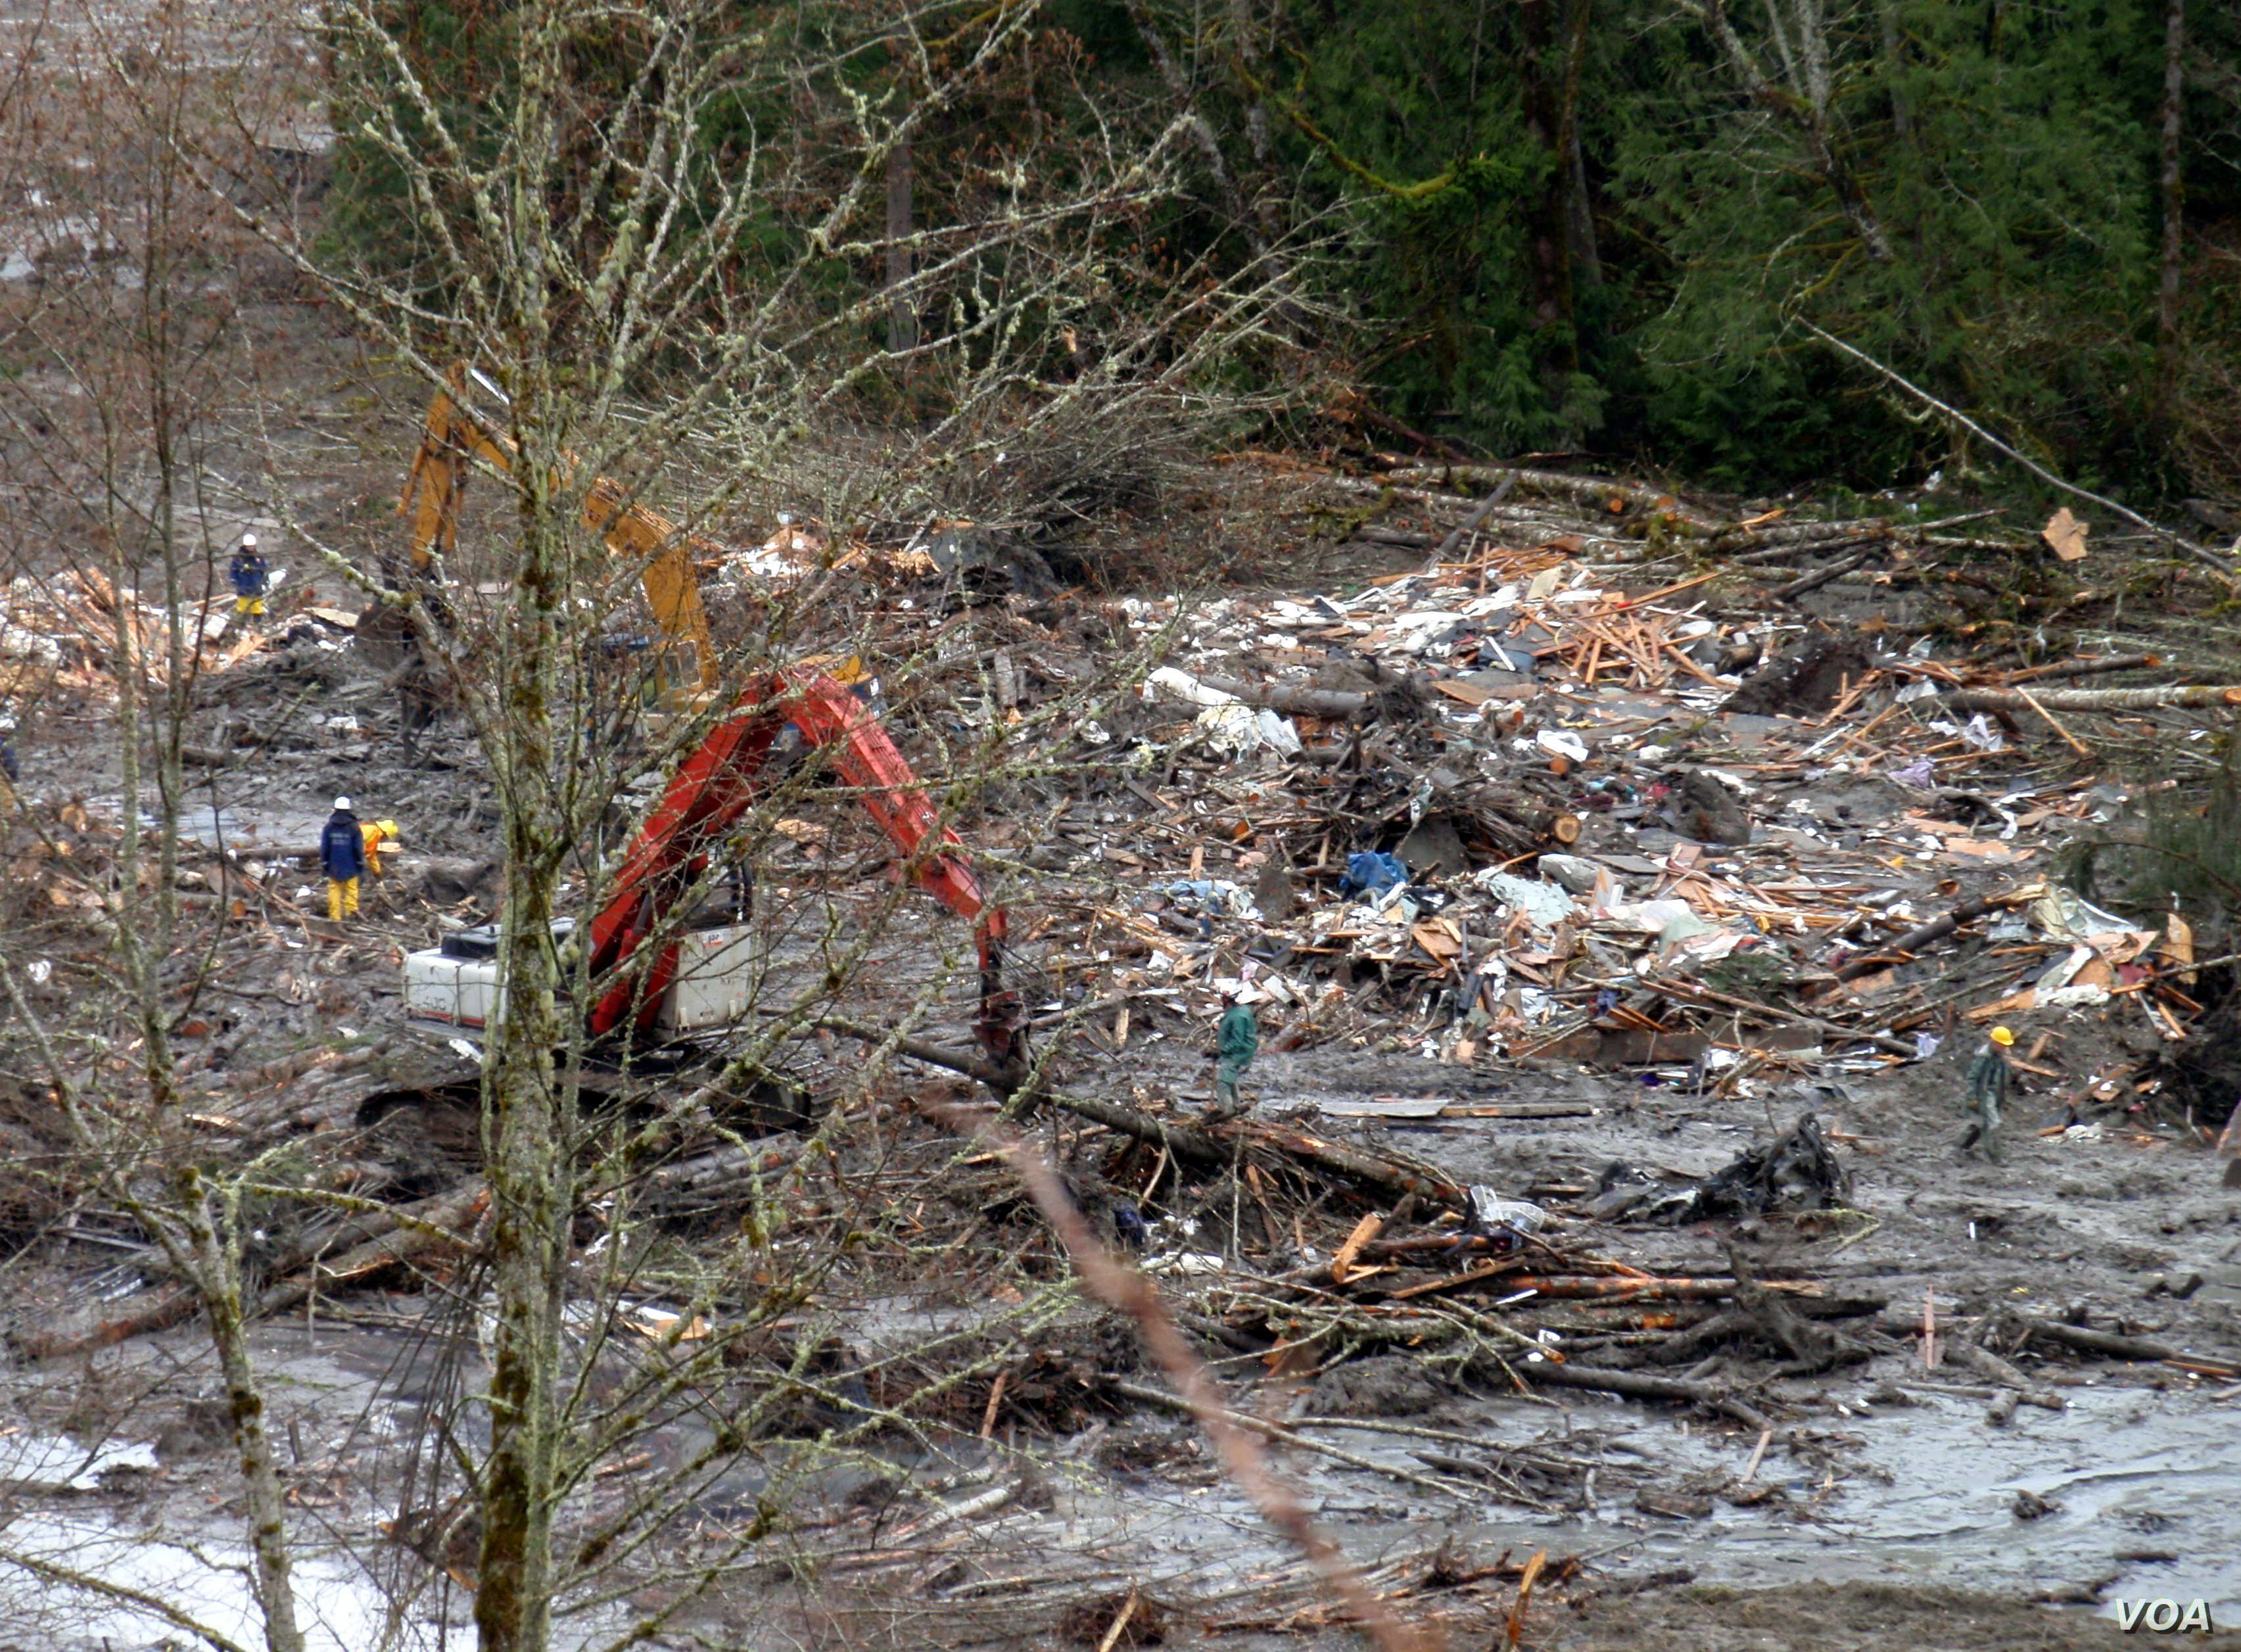 Homes destroyed by the Oso, Washington, landslide are barely recognizable as such. (T. Banse/VOA)